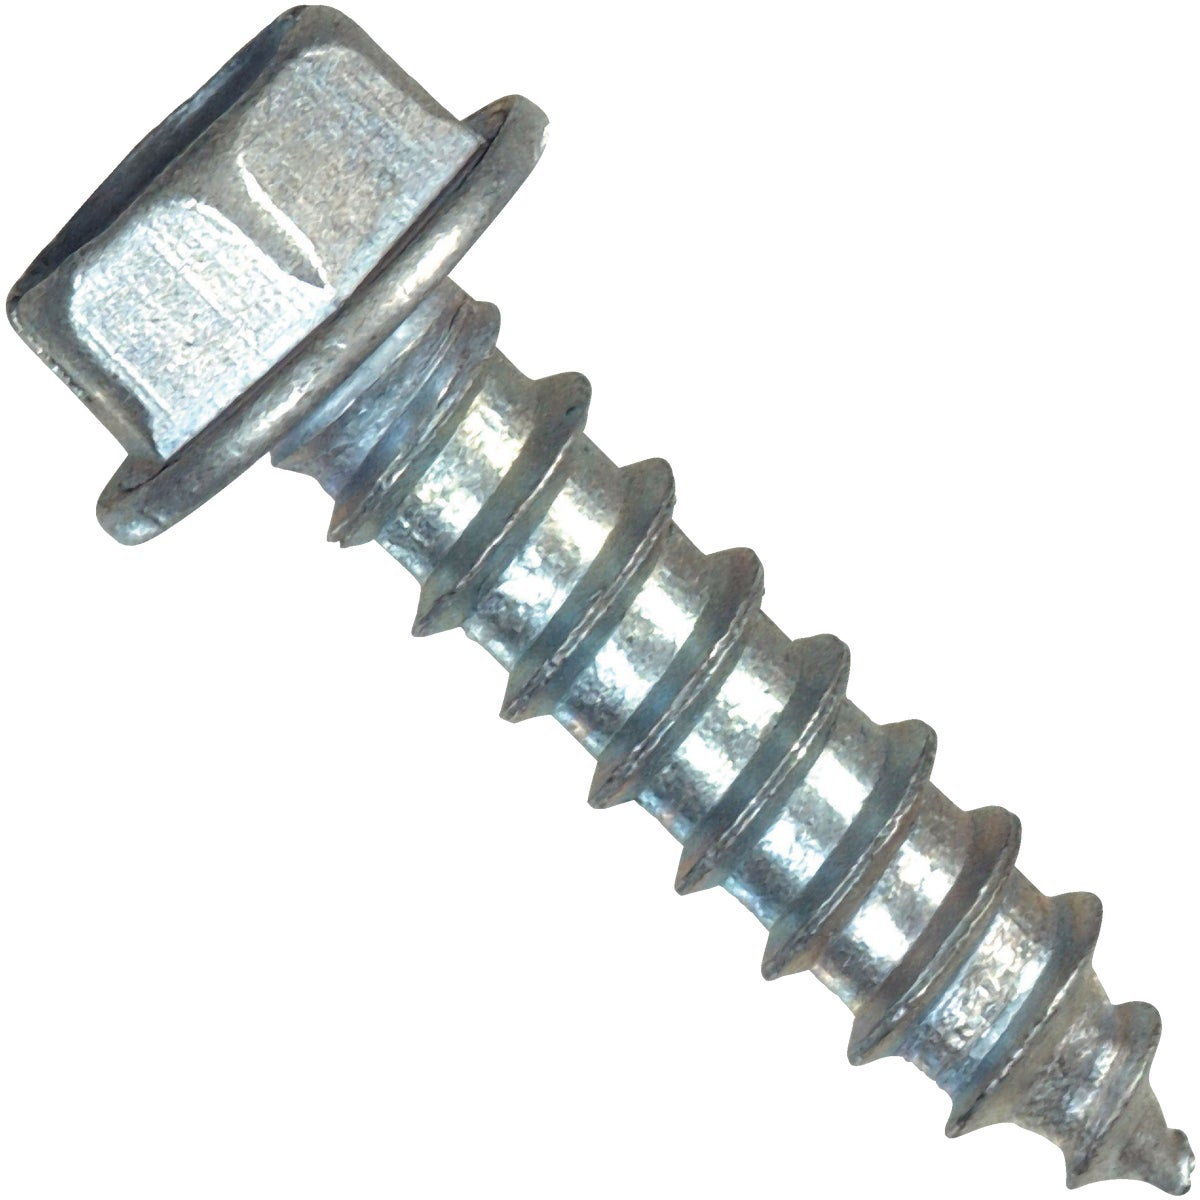 10X1-1/2 HWH ST MT SCREW